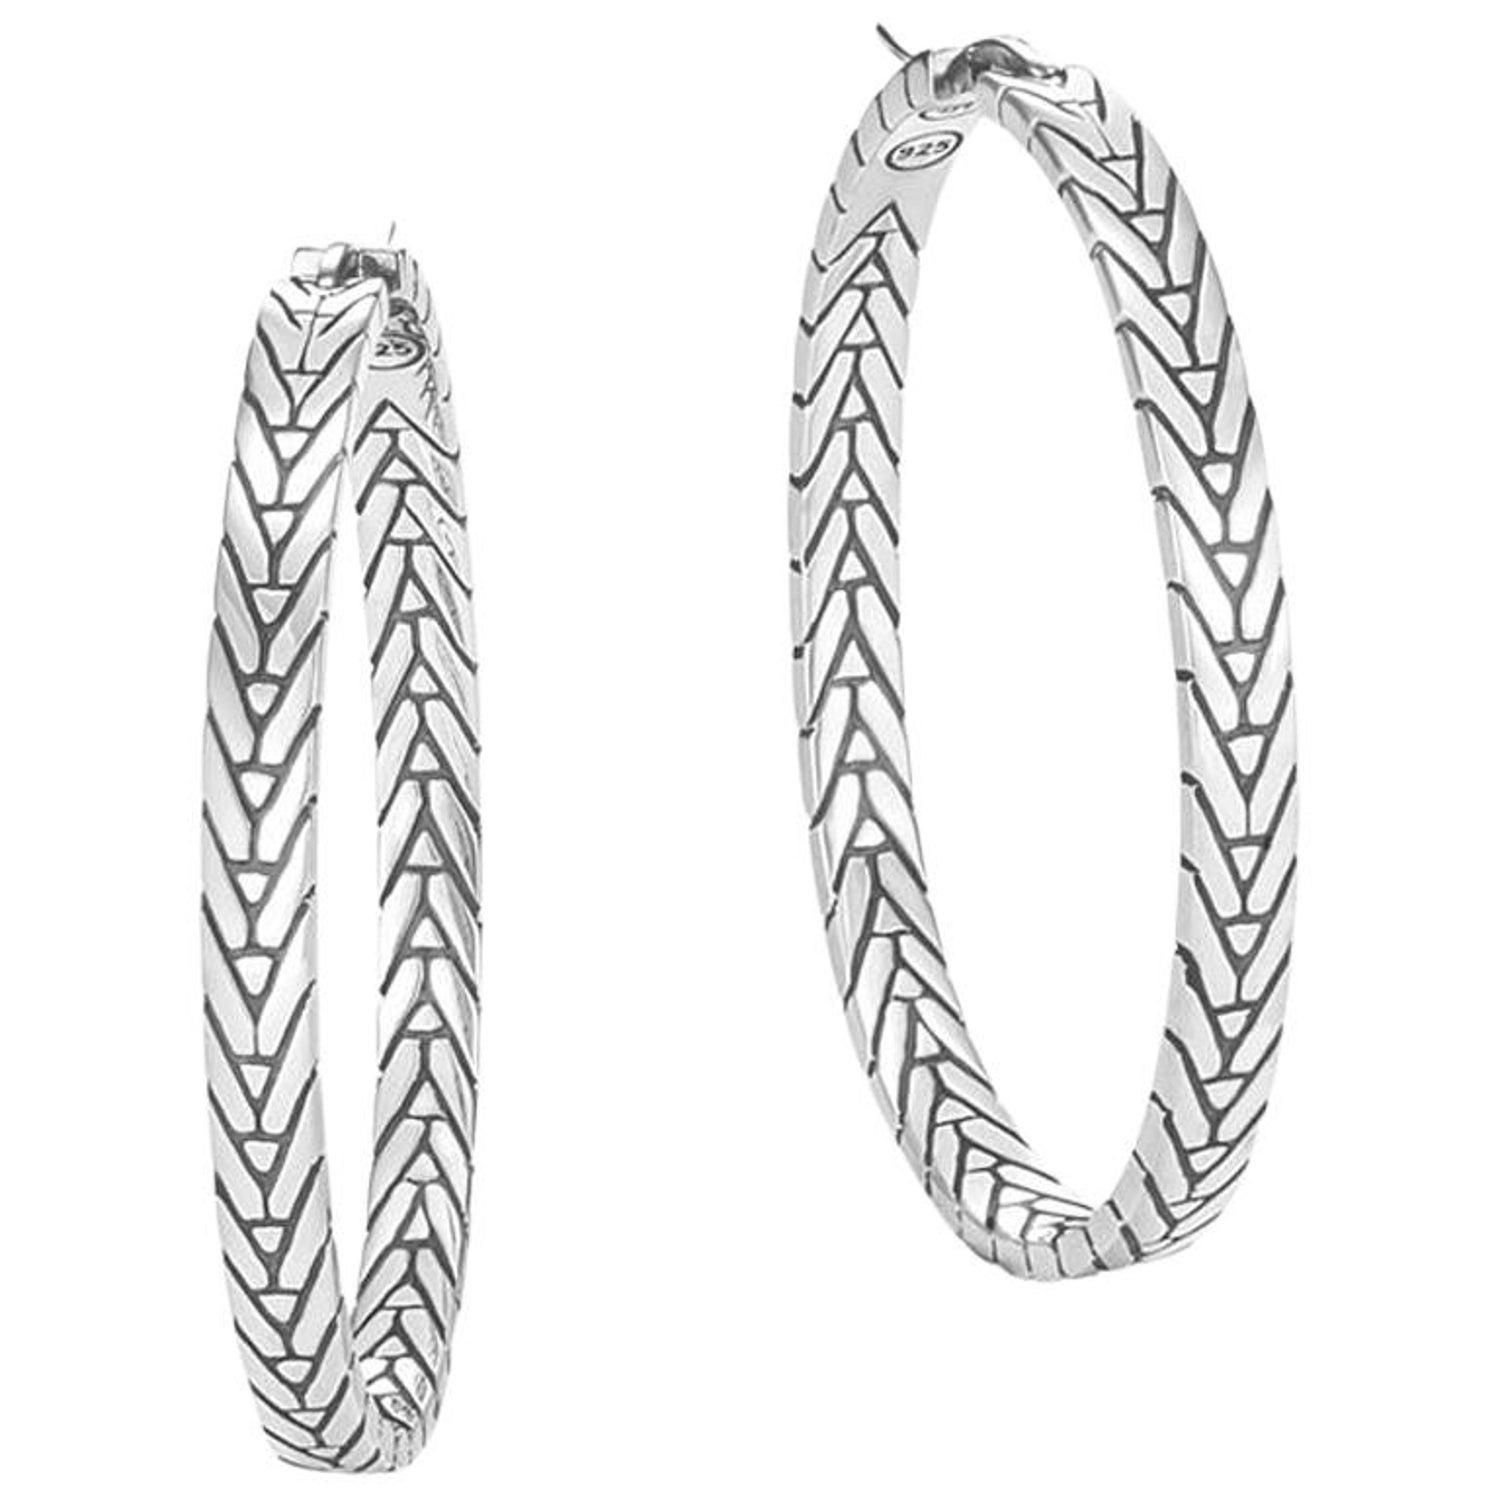 d592e533f960 John Hardy Women s Modern Chain Silver Medium Hoop Earrings For Sale at  1stdibs